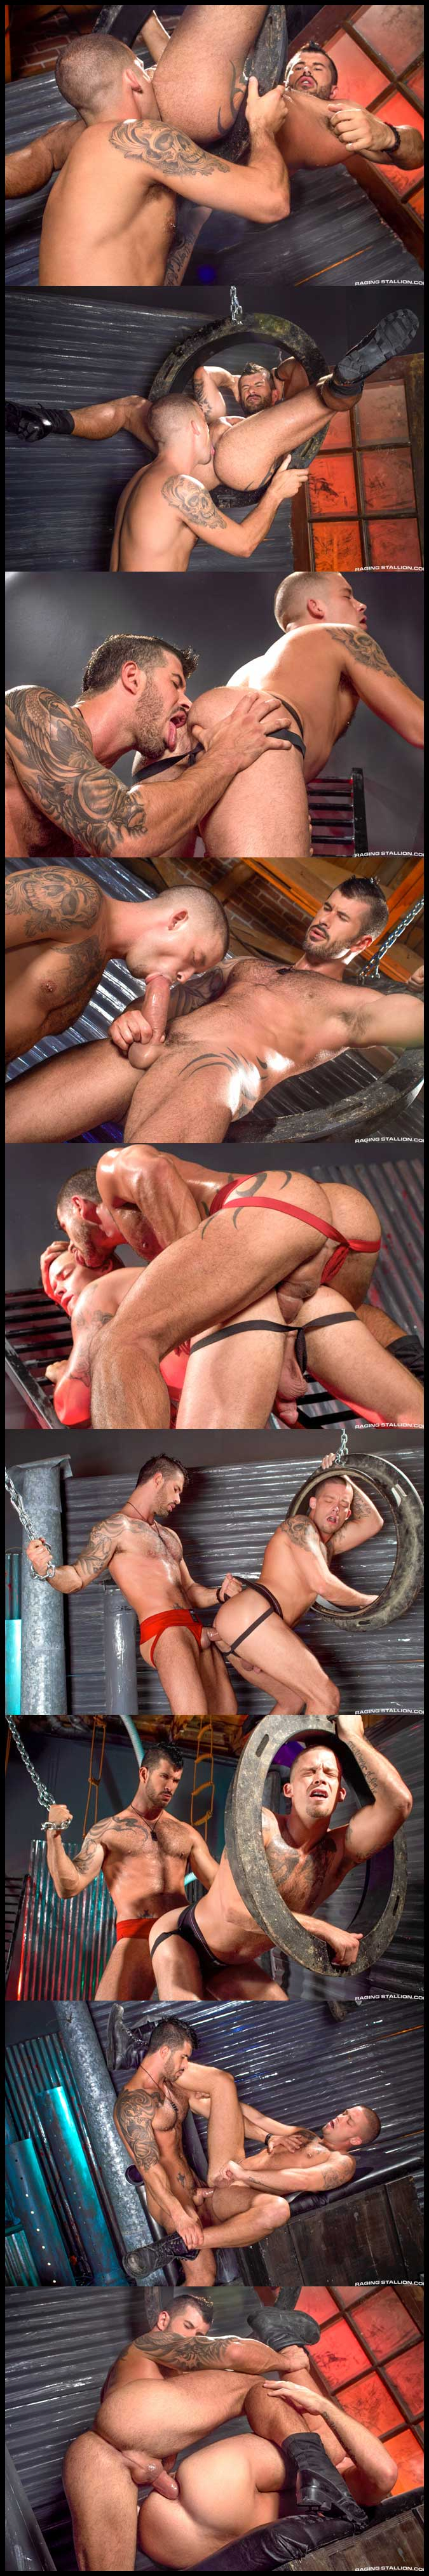 Cock-Tease-Collage